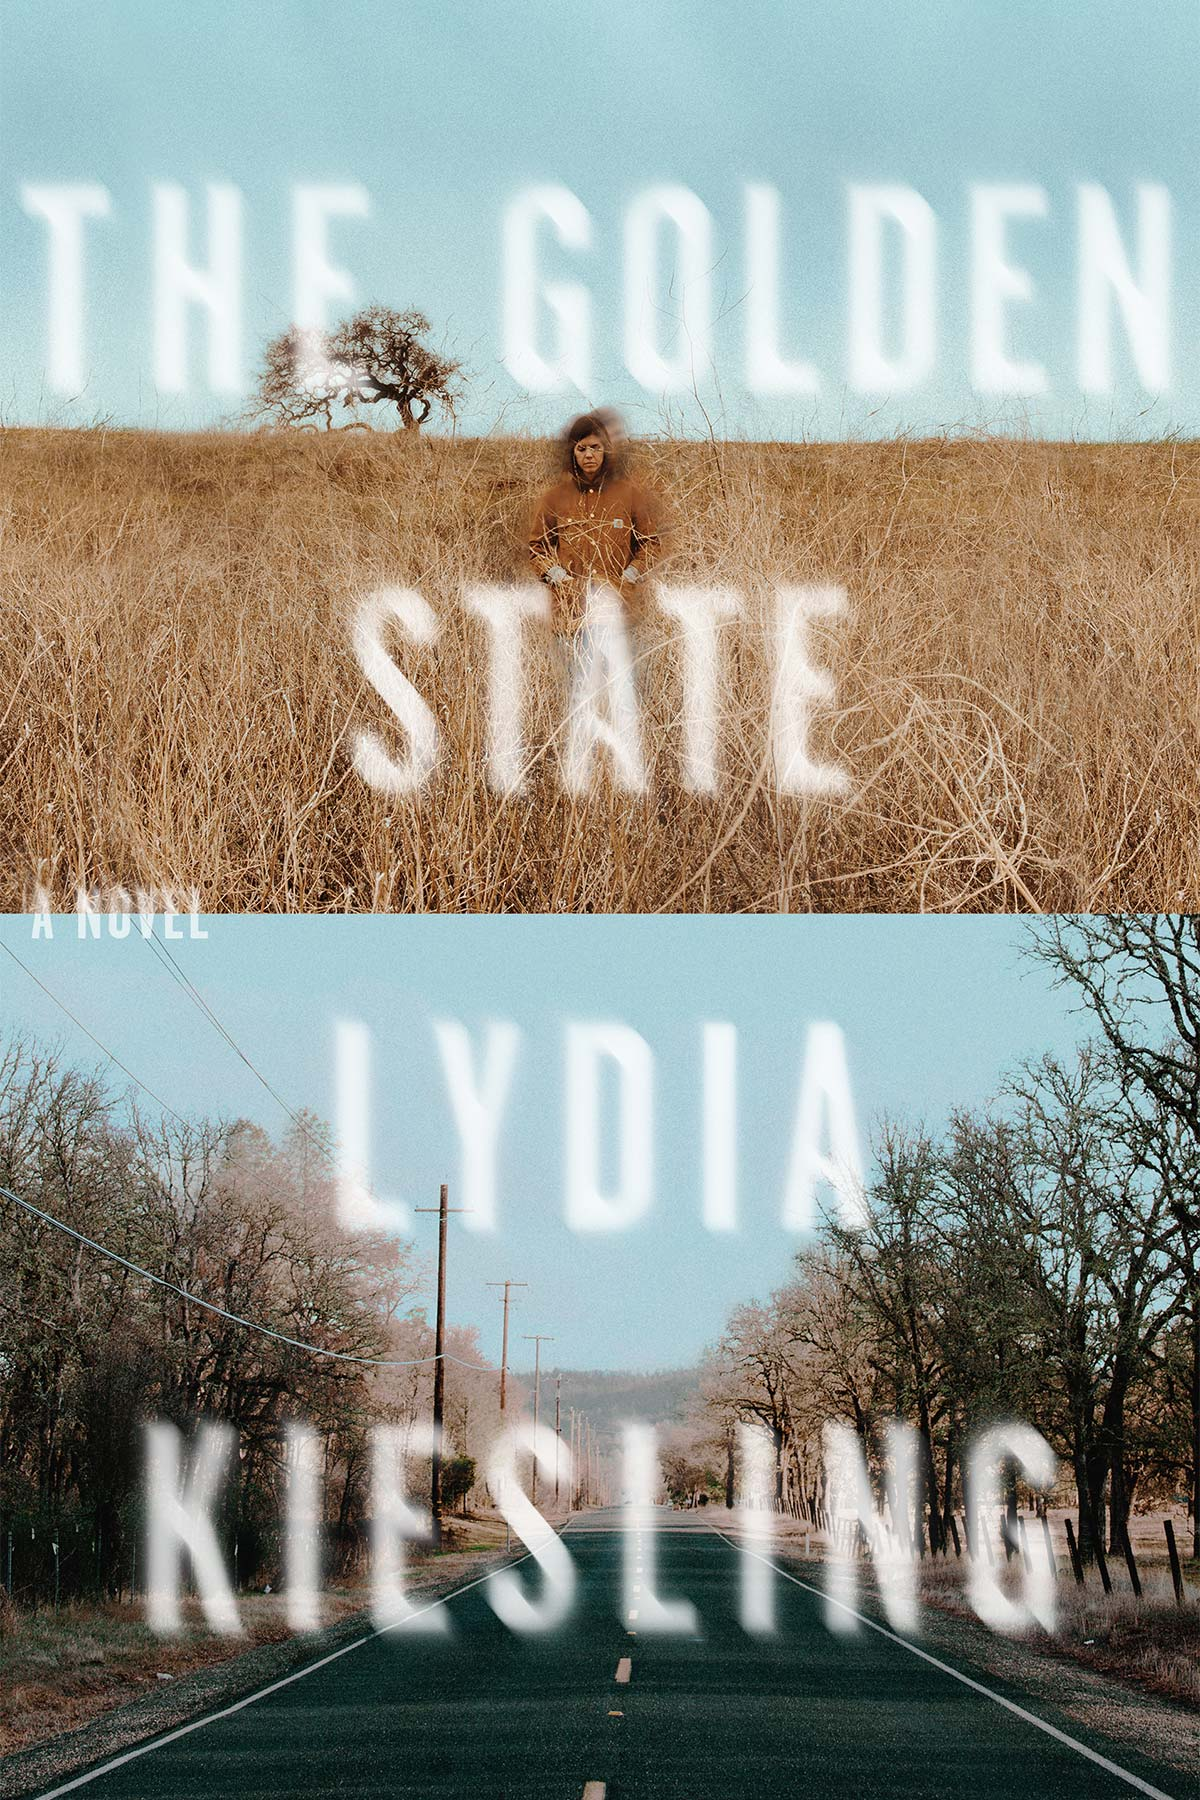 Cover for The Golden State: The top half depicts a mildly blurry person standing in a field uninterrupted but for a lone tree in the far distance. The bottom depicts a normal two-way, four-lane road lined with power lines and trees.